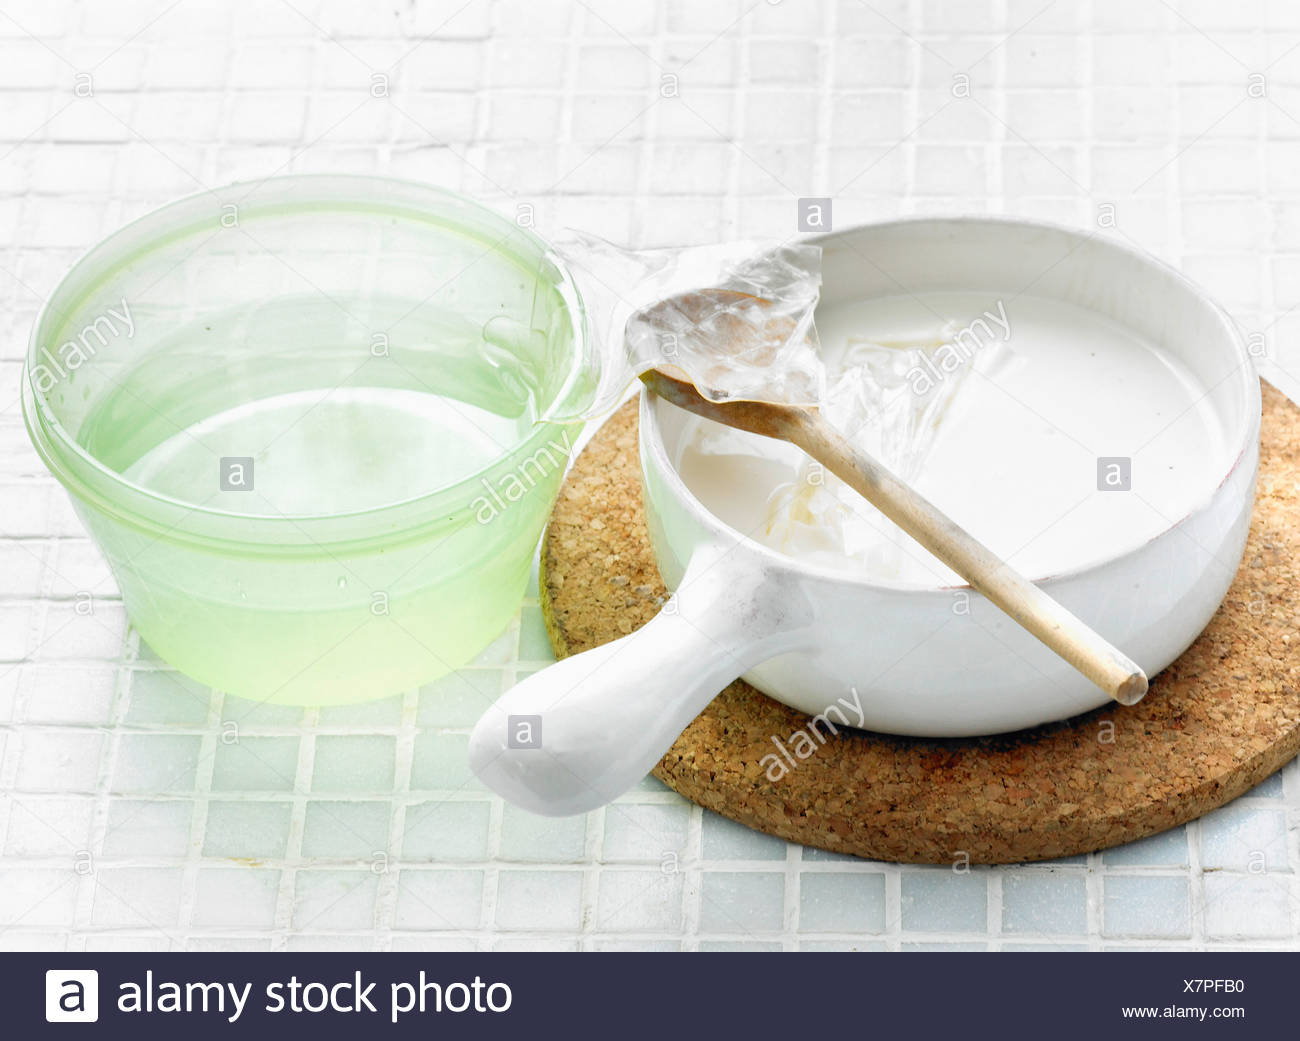 Adding the gelatine sheets to the hot cream and sugar mixture - Stock Image